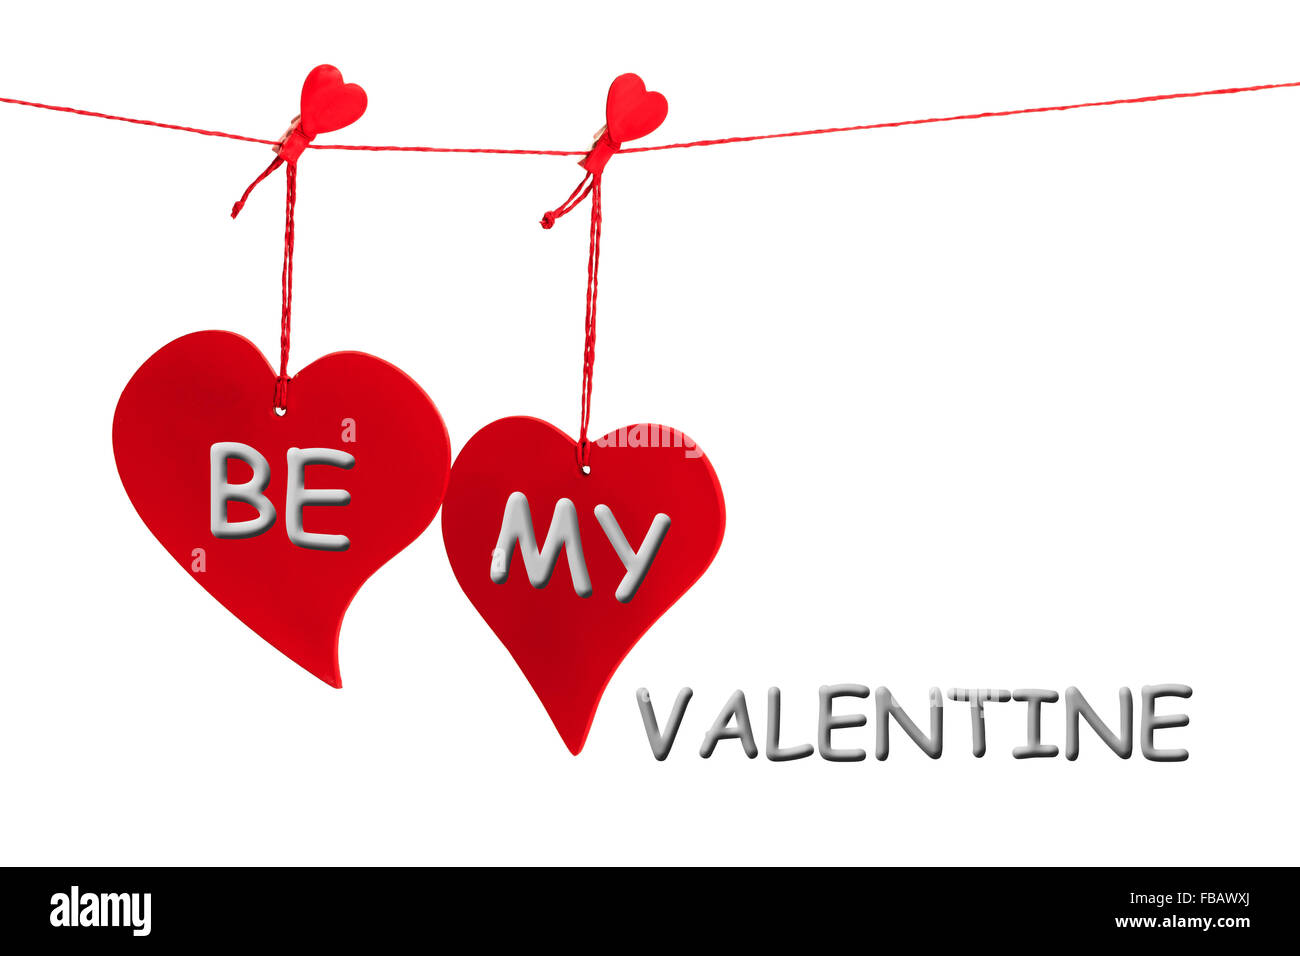 Two hanging red hearts with BE MY VALENTINE text in grey isolated on white background - Stock Image